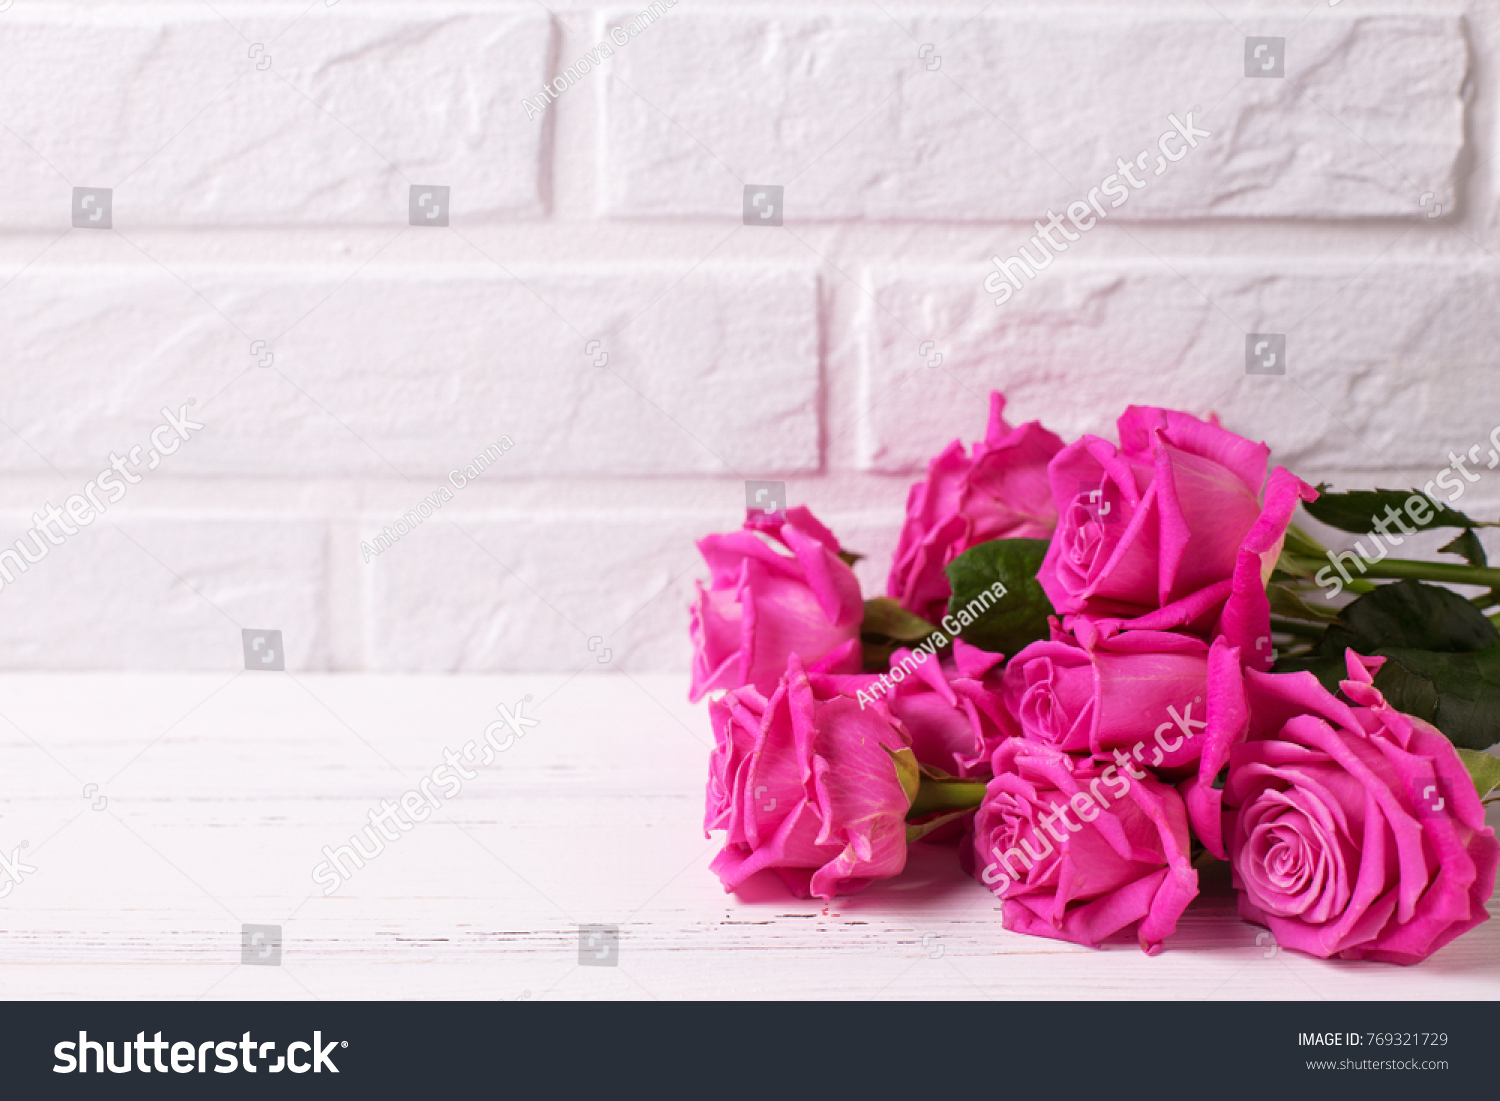 Bunch Of Pink Roses Flowers On White Wooden Background Against White